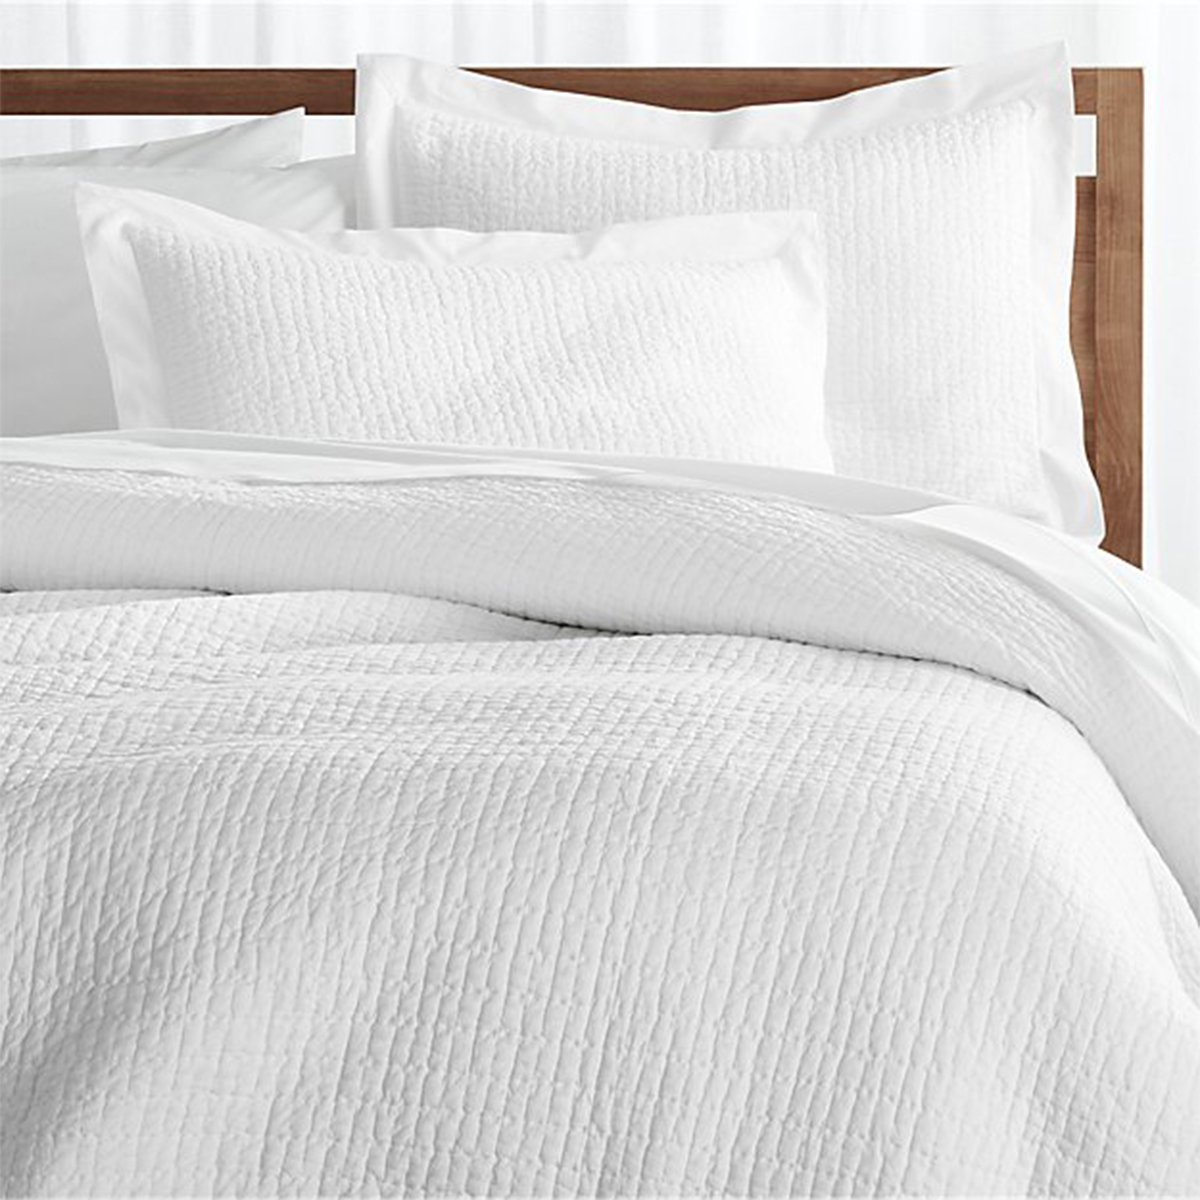 All-white soft cotton bed set and matching pillow shams. photo